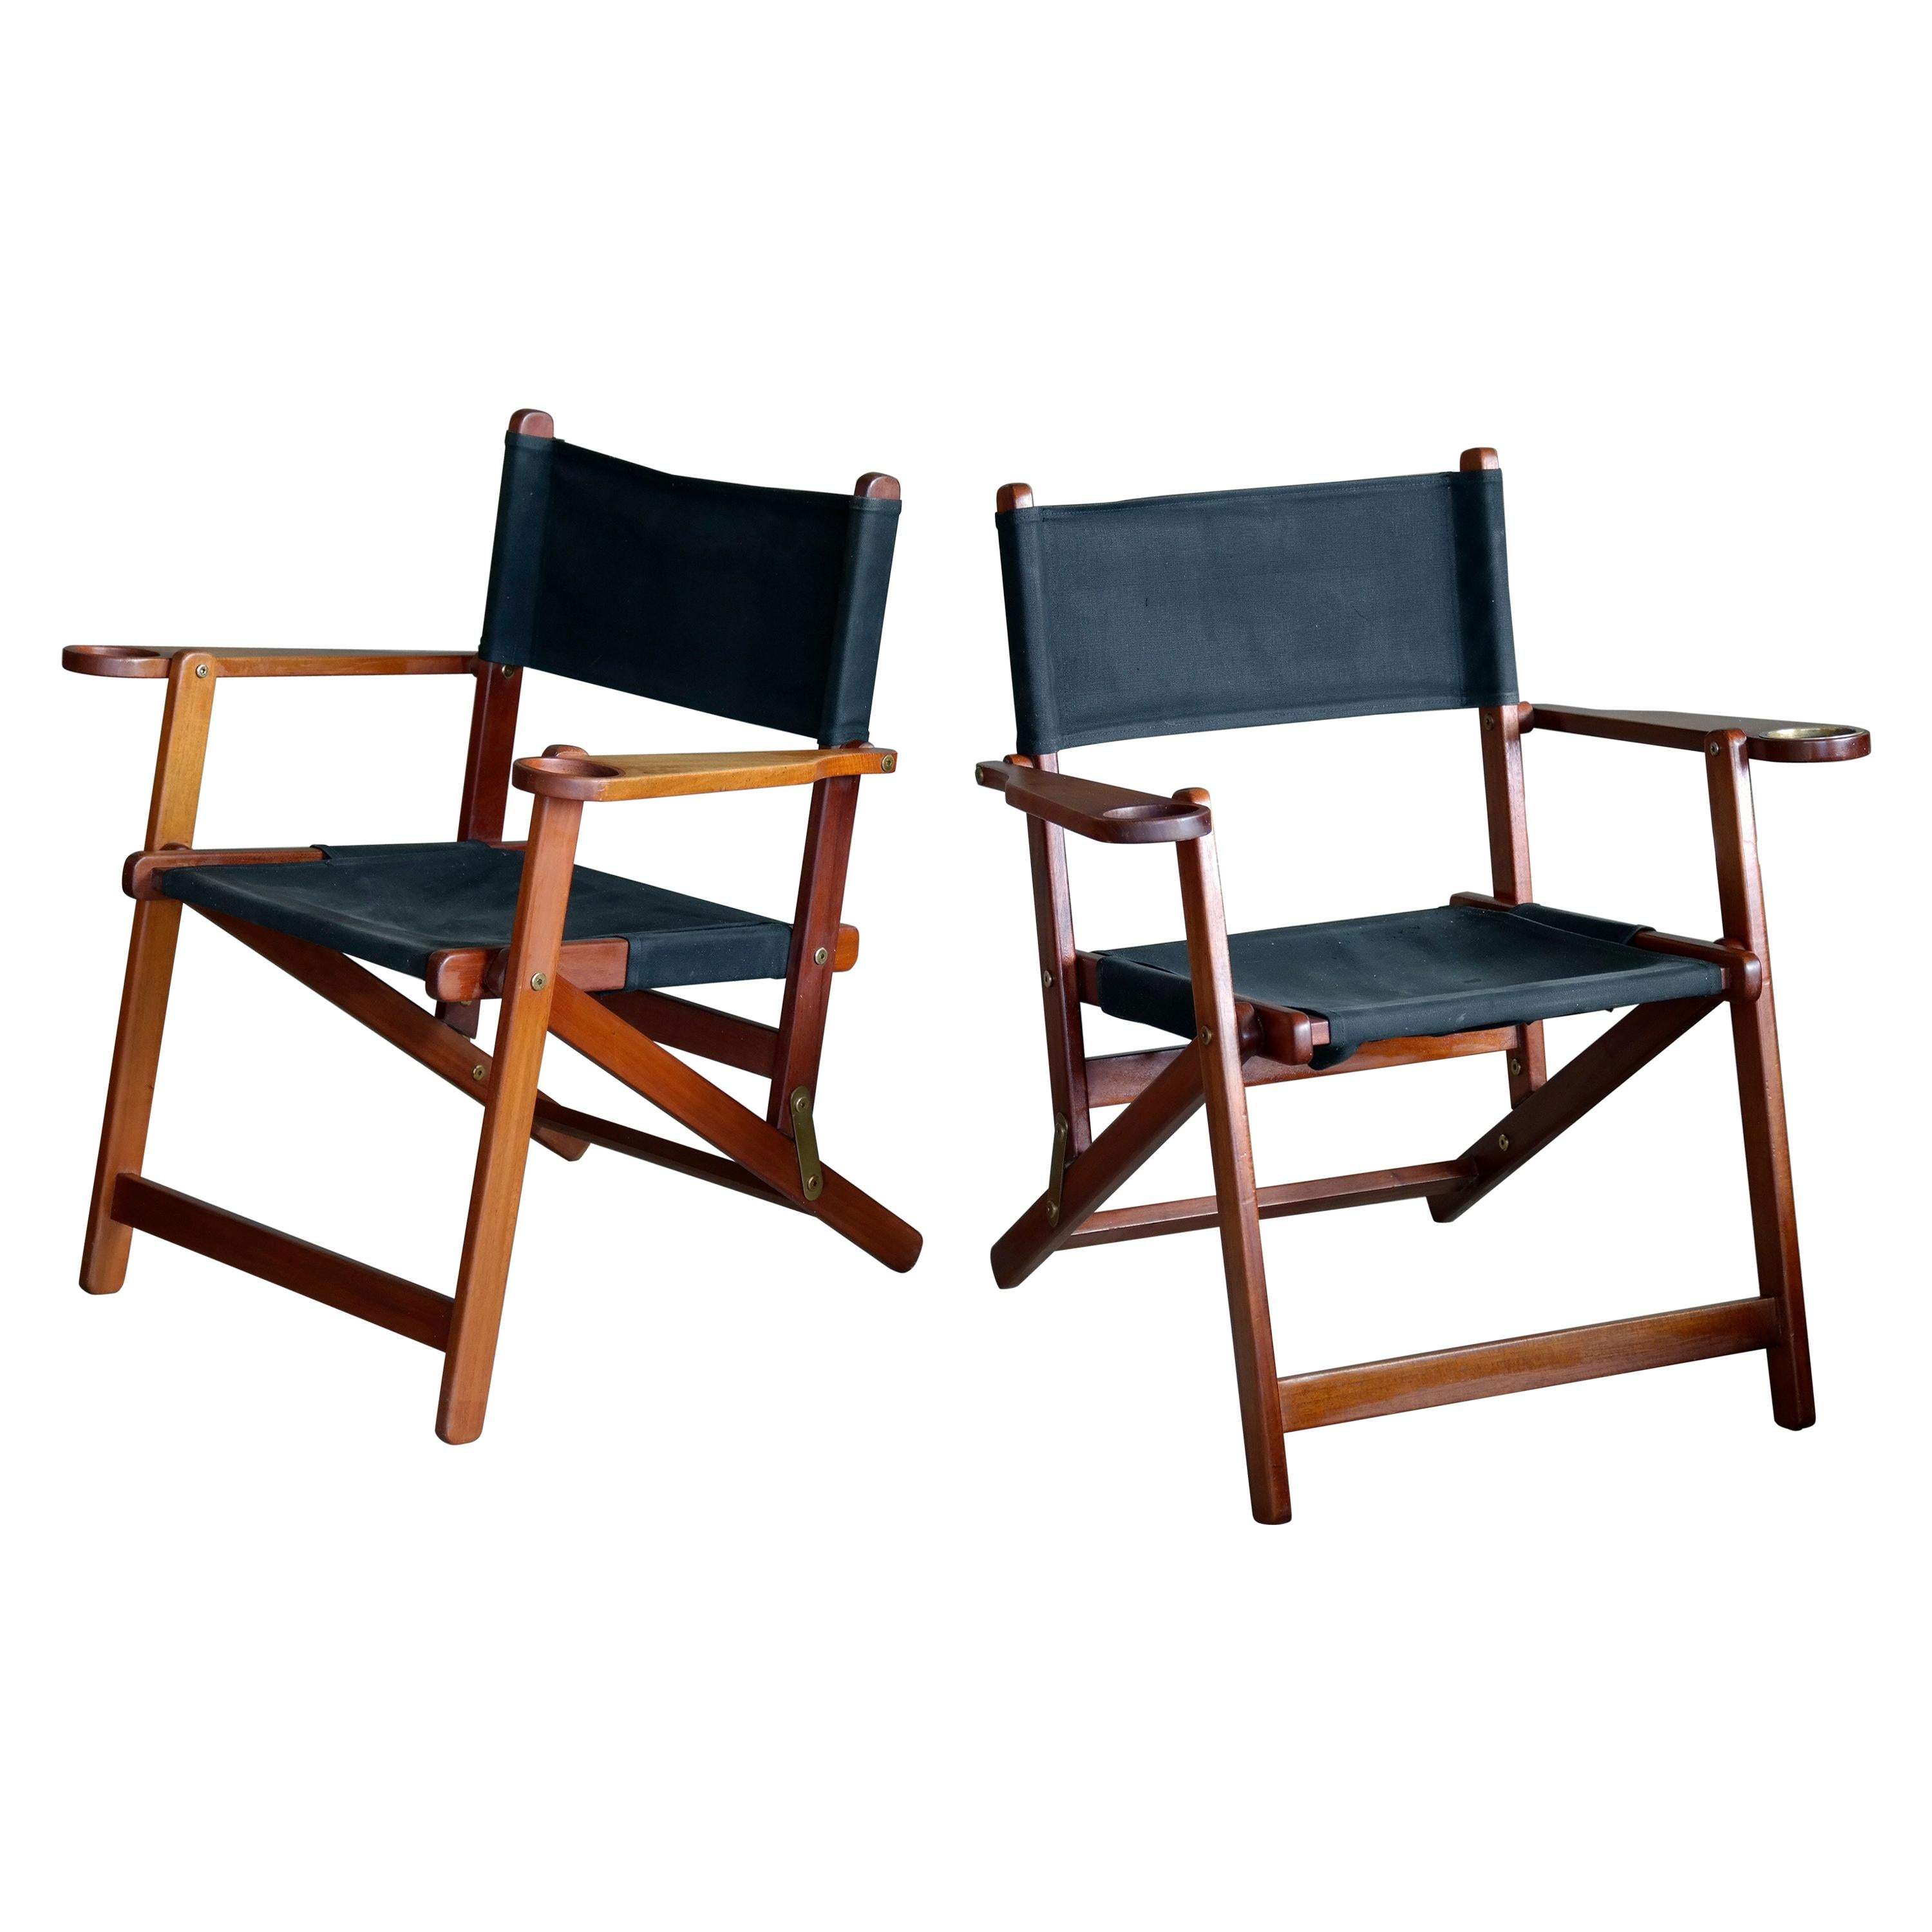 Pair Of Danish Midcentury Folding Deck Chairs In Solid Teak For Sale At 1stdibs